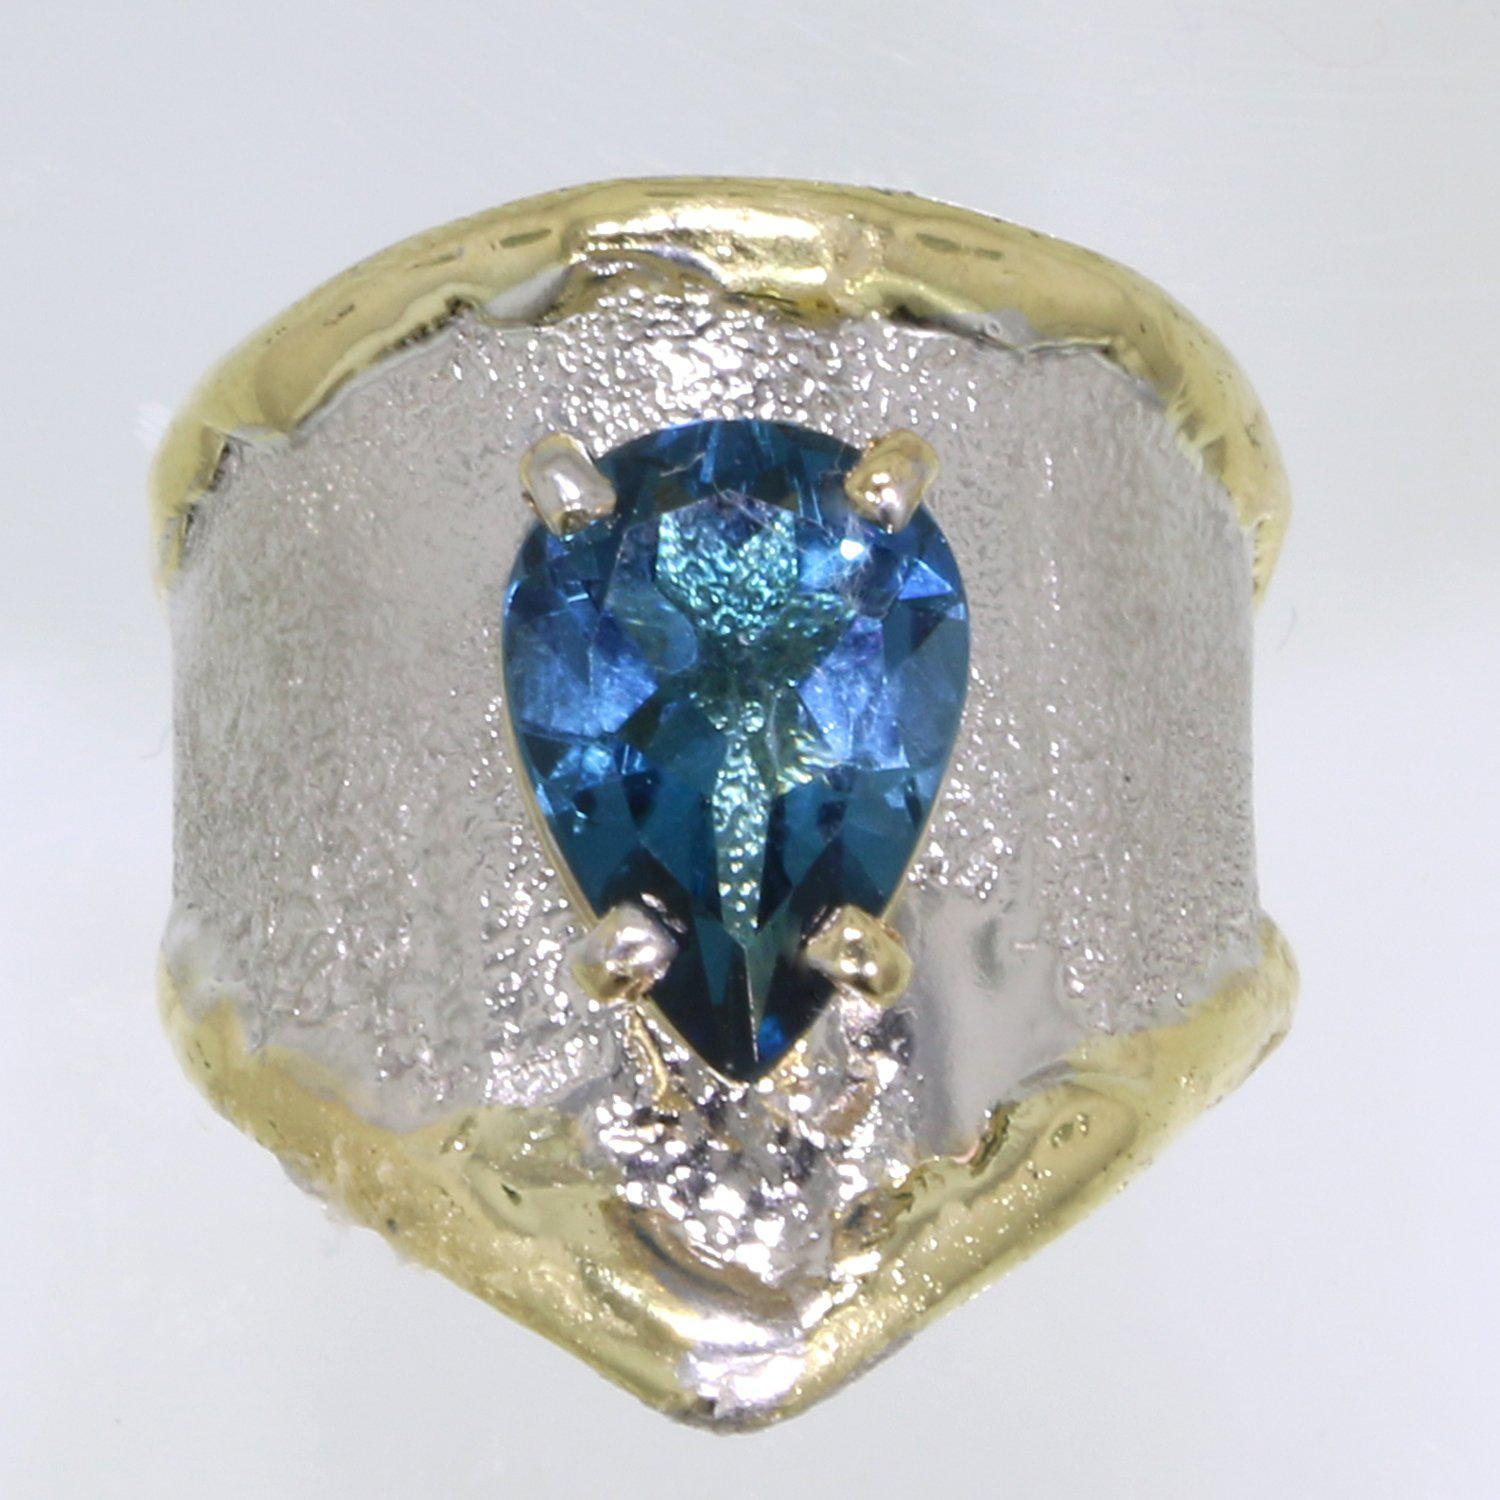 14K Gold & Crystalline Silver London Blue Topaz Ring - 31923-Fusion Designs-Renee Taylor Gallery